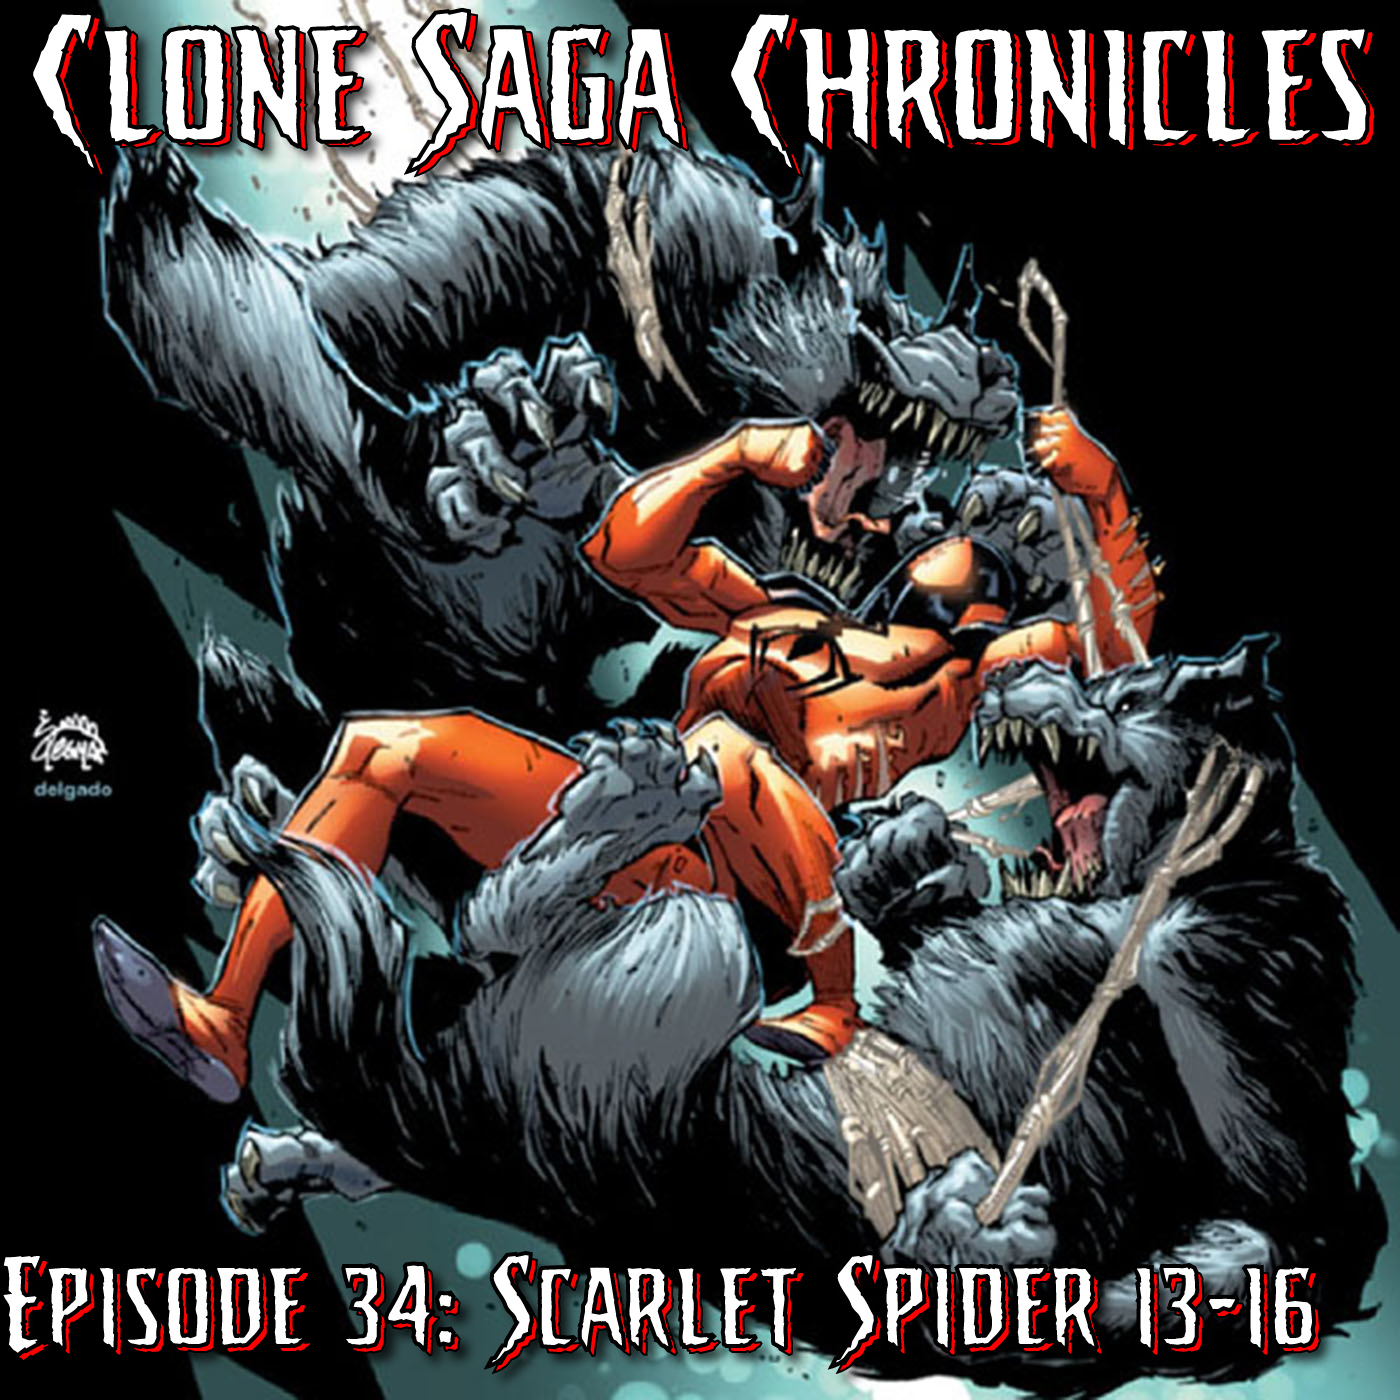 CSC Episode 34: Scarlet Spider (Vol II) 13-16 (Cover Date: Mar/Apr/Jun/Jul 2013)